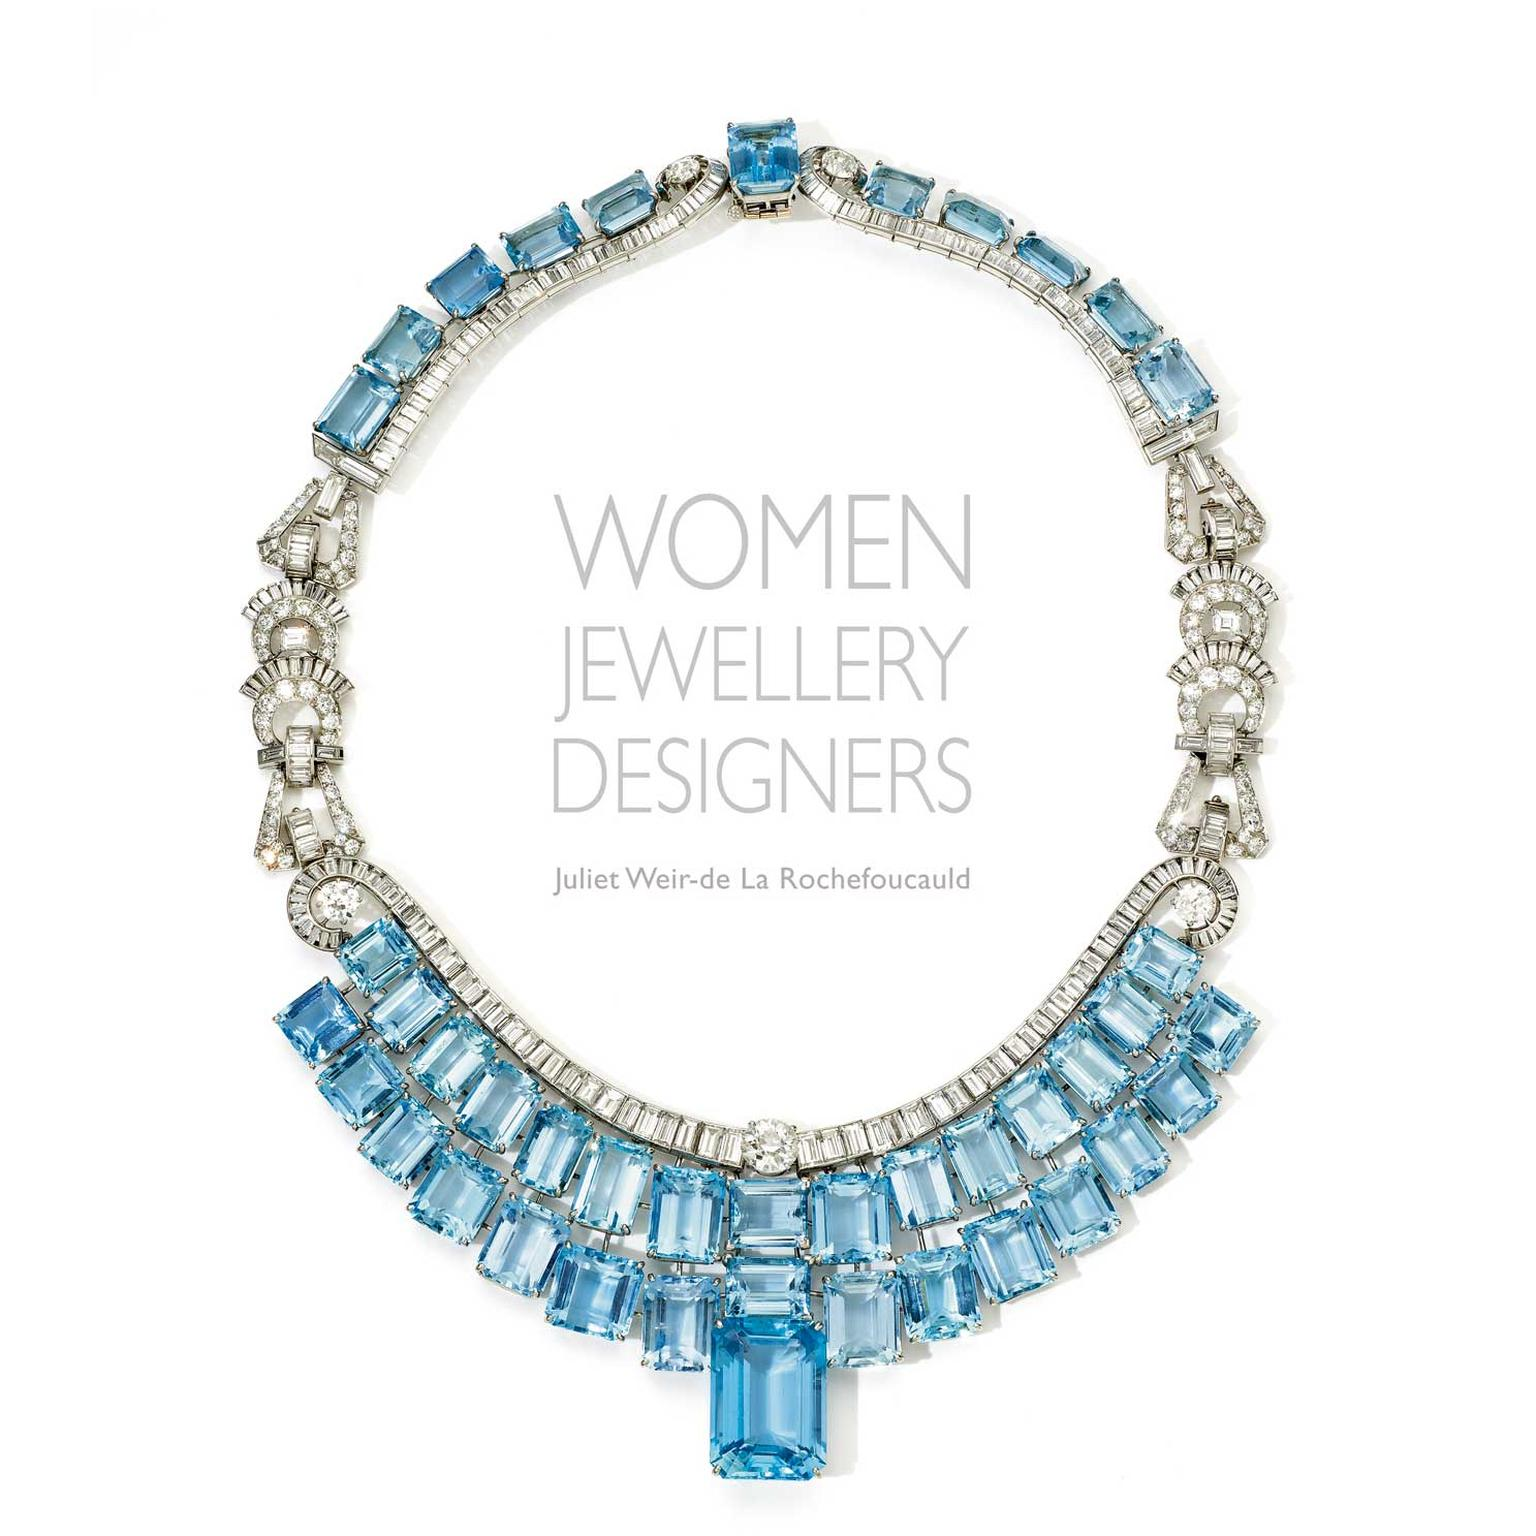 Women Jewellery Designers book cover